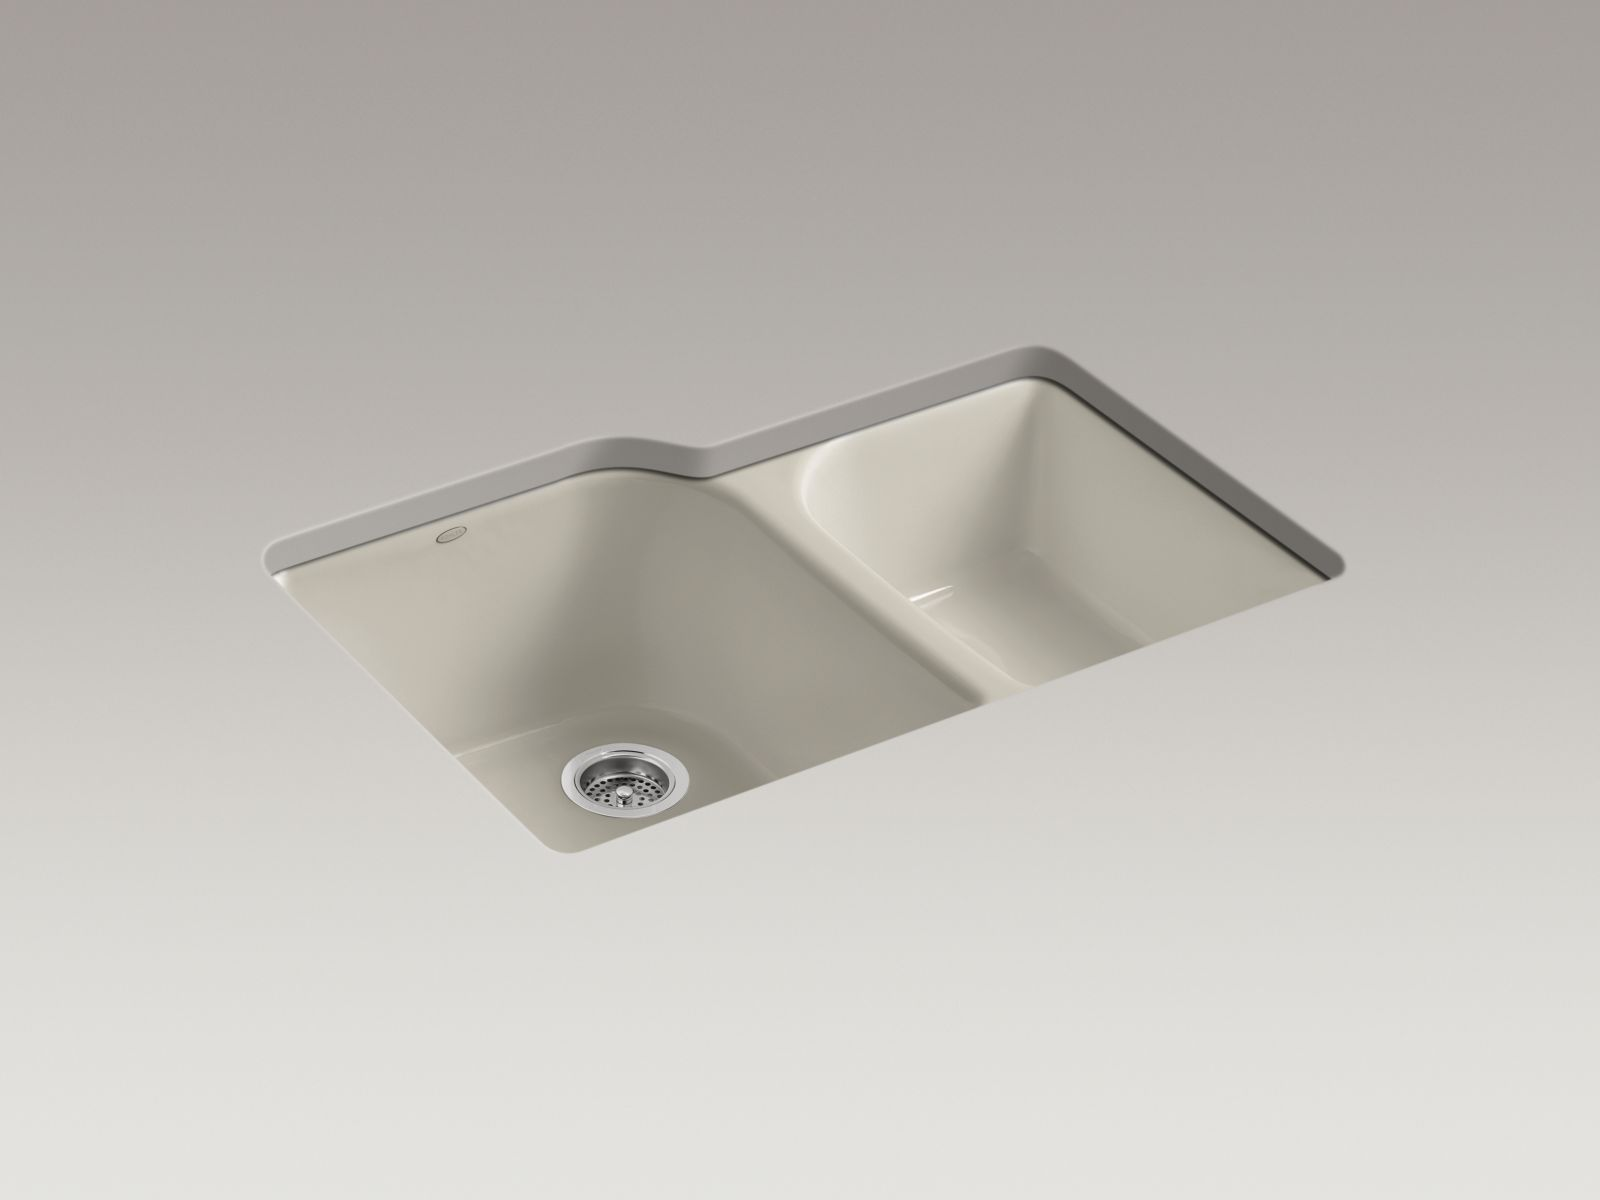 Kohler K-5931-4U-G9 Executive Chef Undermount Deep and Shallow Bowl Kitchen Sink with 4 Faucet Holes Sandbar